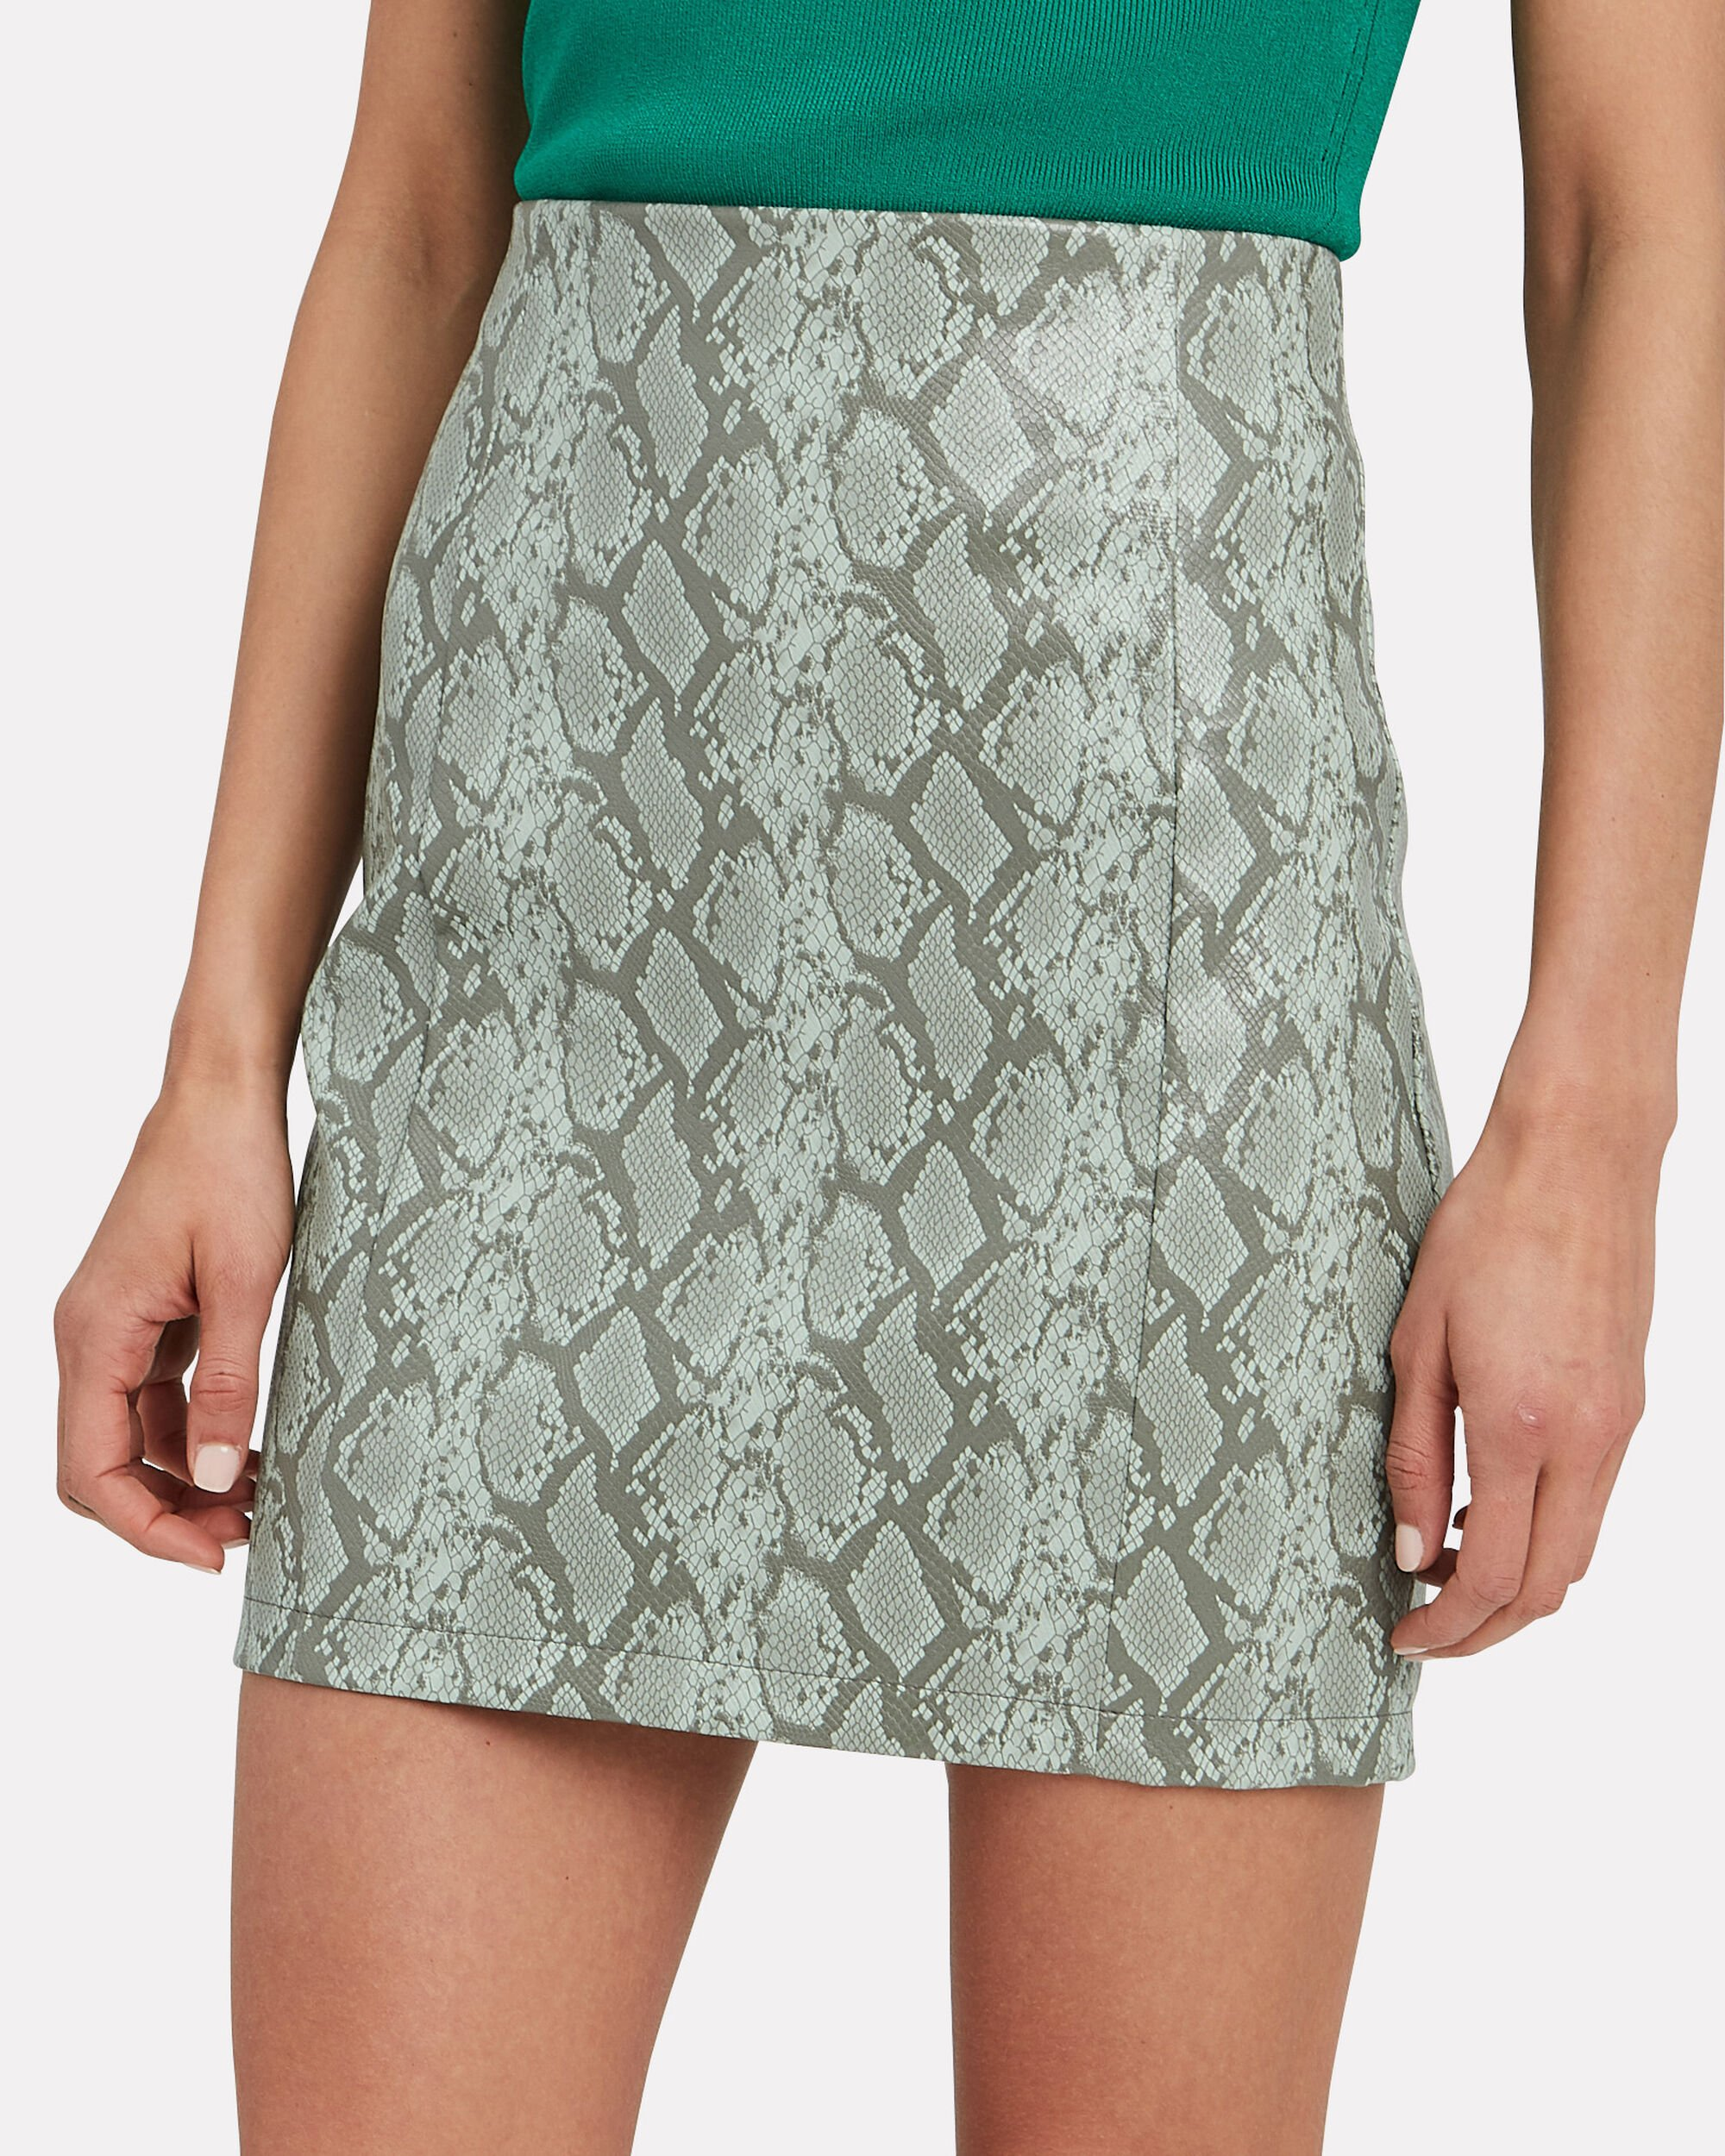 Rida Snakeprint Mini Skirt, GREY/SNAKESKIN, hi-res